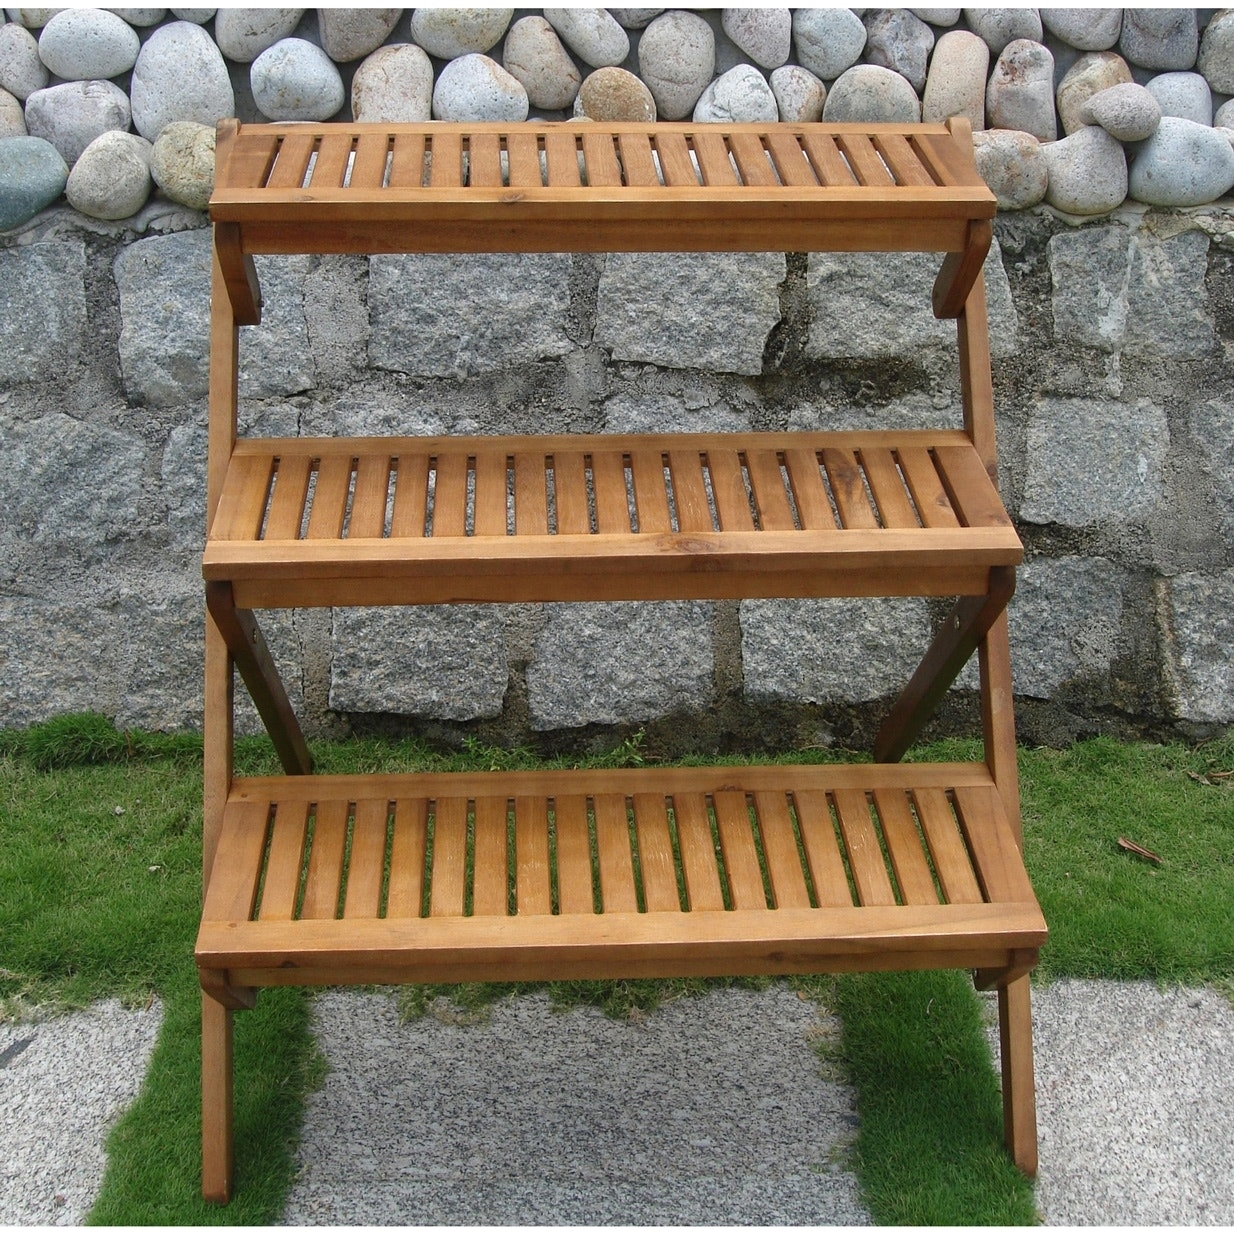 Strange 3 Tier Planter Stand In Eucalyptus Wood For Outdoor Or Indoor Use Andrewgaddart Wooden Chair Designs For Living Room Andrewgaddartcom